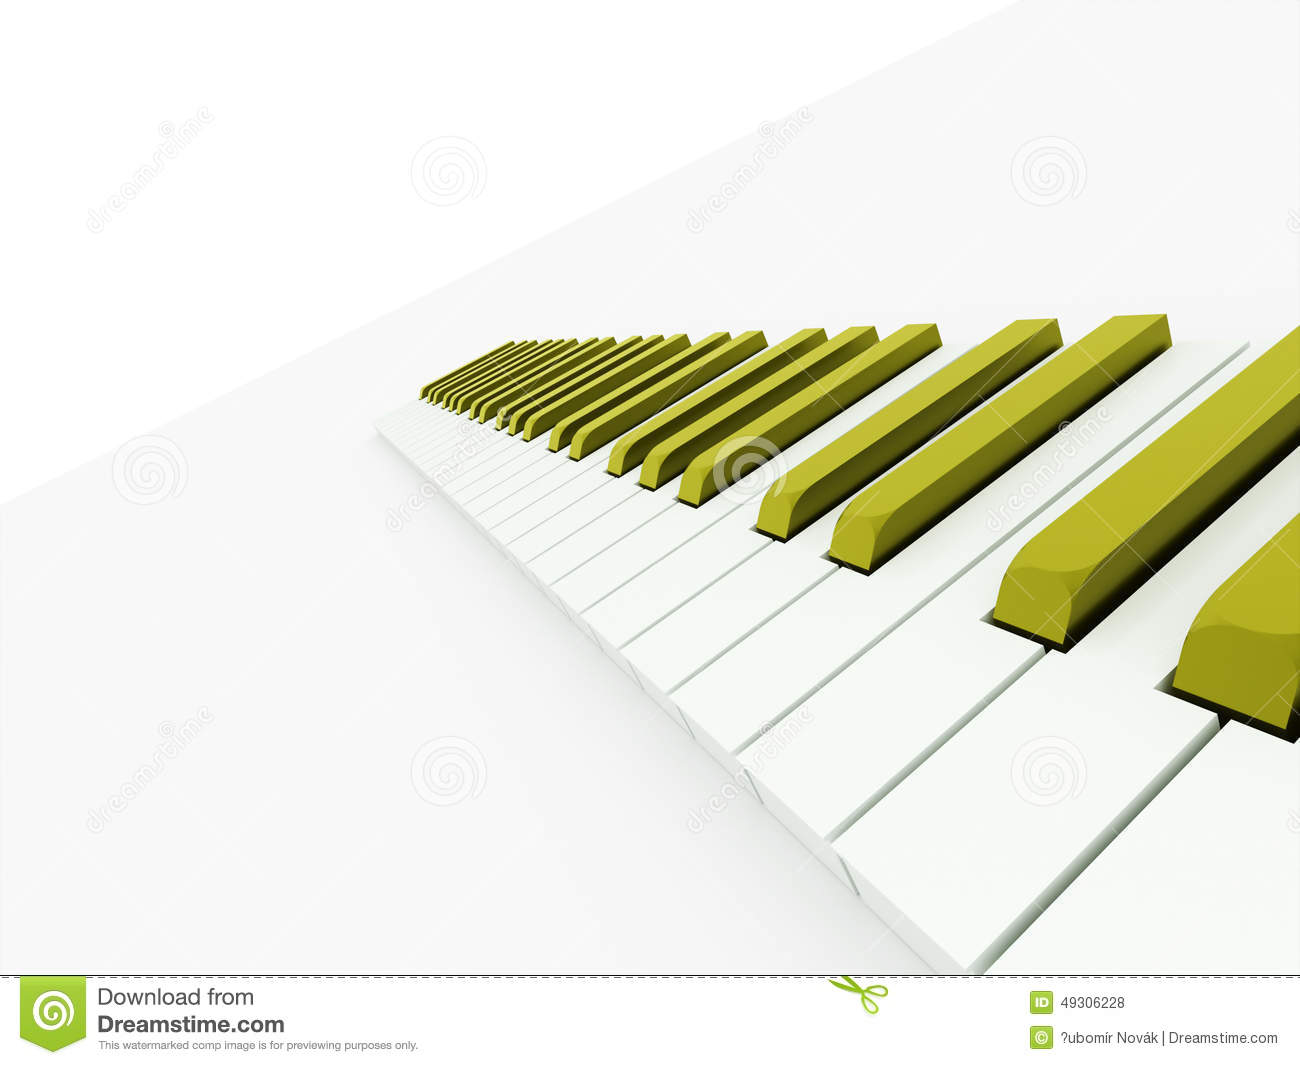 clavier de piano vert rendu illustration stock illustration du divertissement jazz 49306228. Black Bedroom Furniture Sets. Home Design Ideas